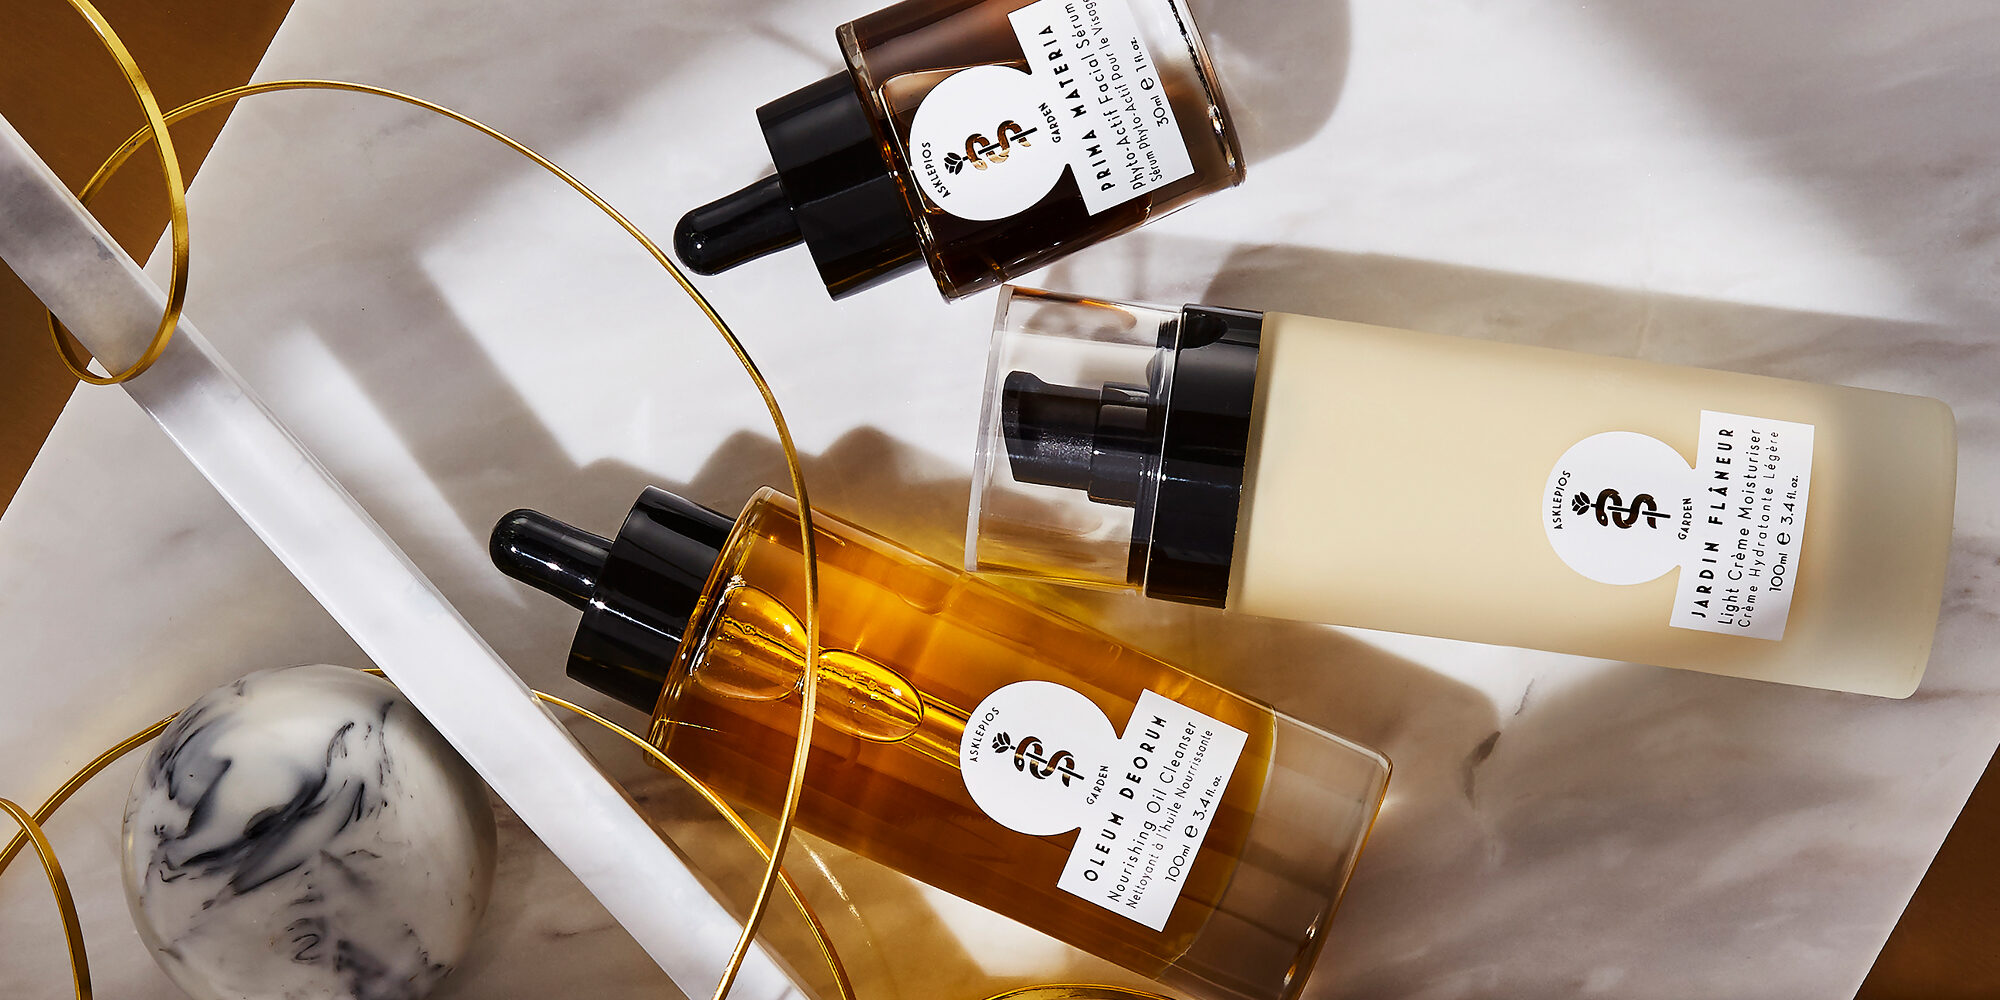 New Brand Asklepios Garden Showcases The Luxury Of Plant-Powered Skincare